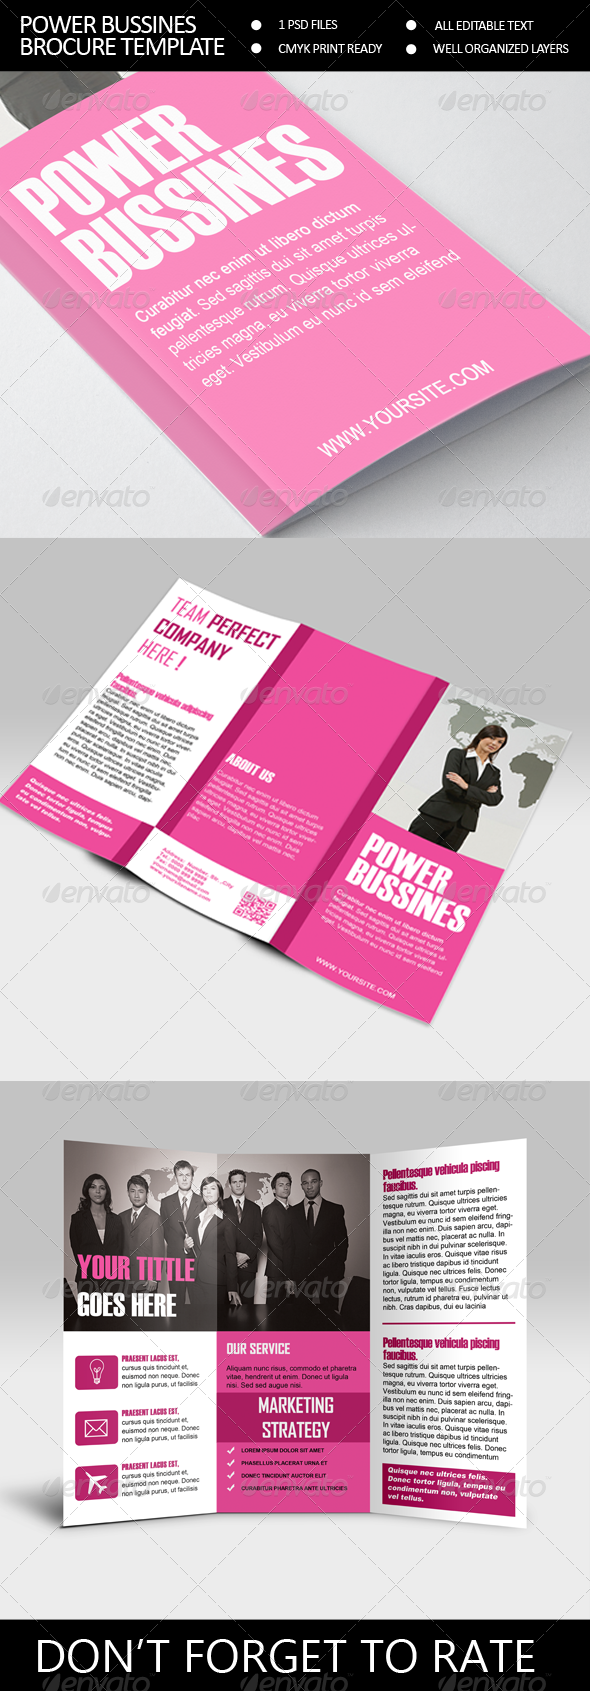 Power Bussines Trifold Brocure Template - Corporate Brochures